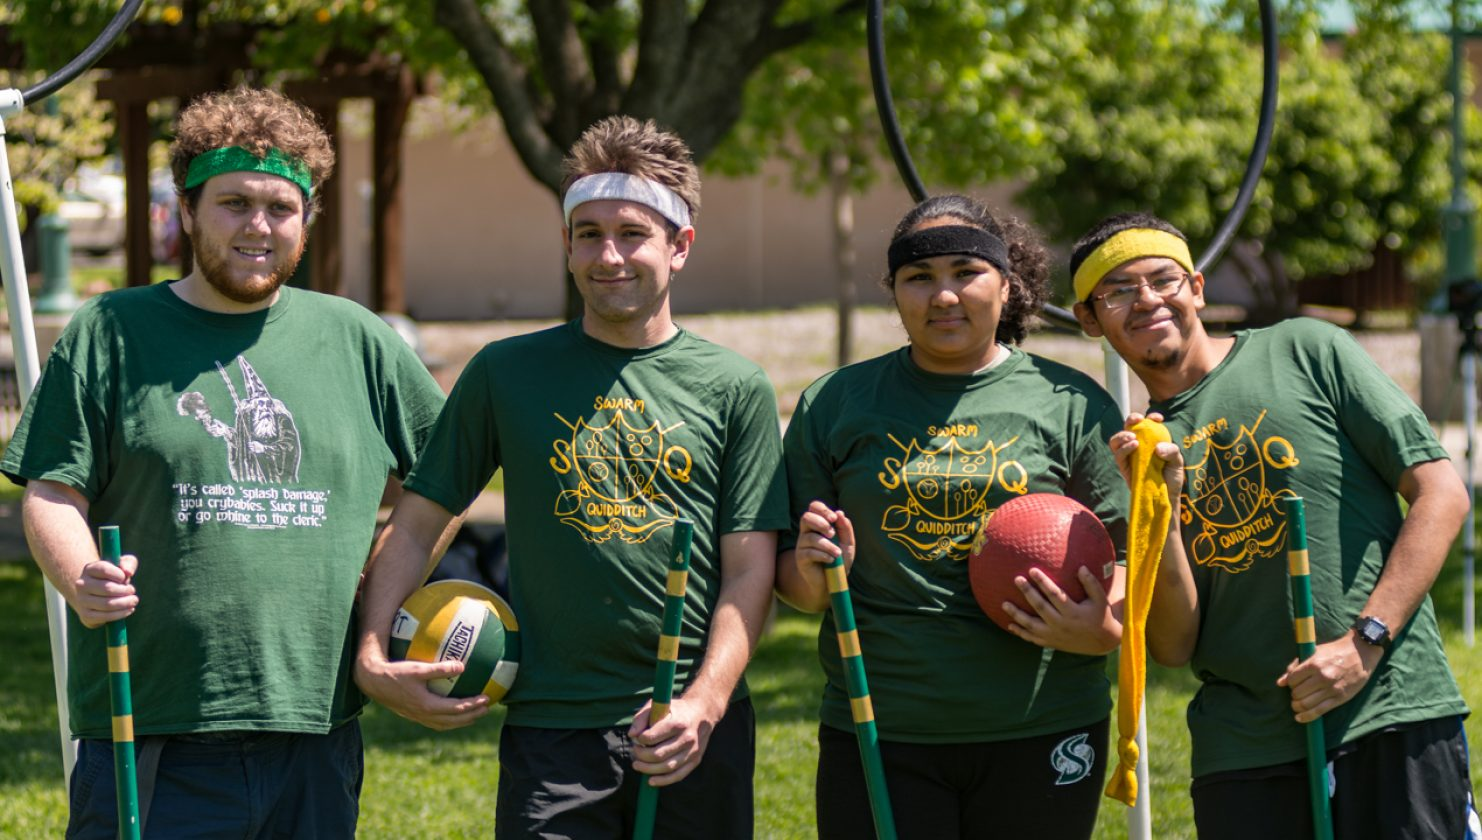 The colors of headbands indicate the position of each player on the team. Keepers green, chasers are white, beaters are black and seekers are yellow. (Photo by Matthew Dyer)